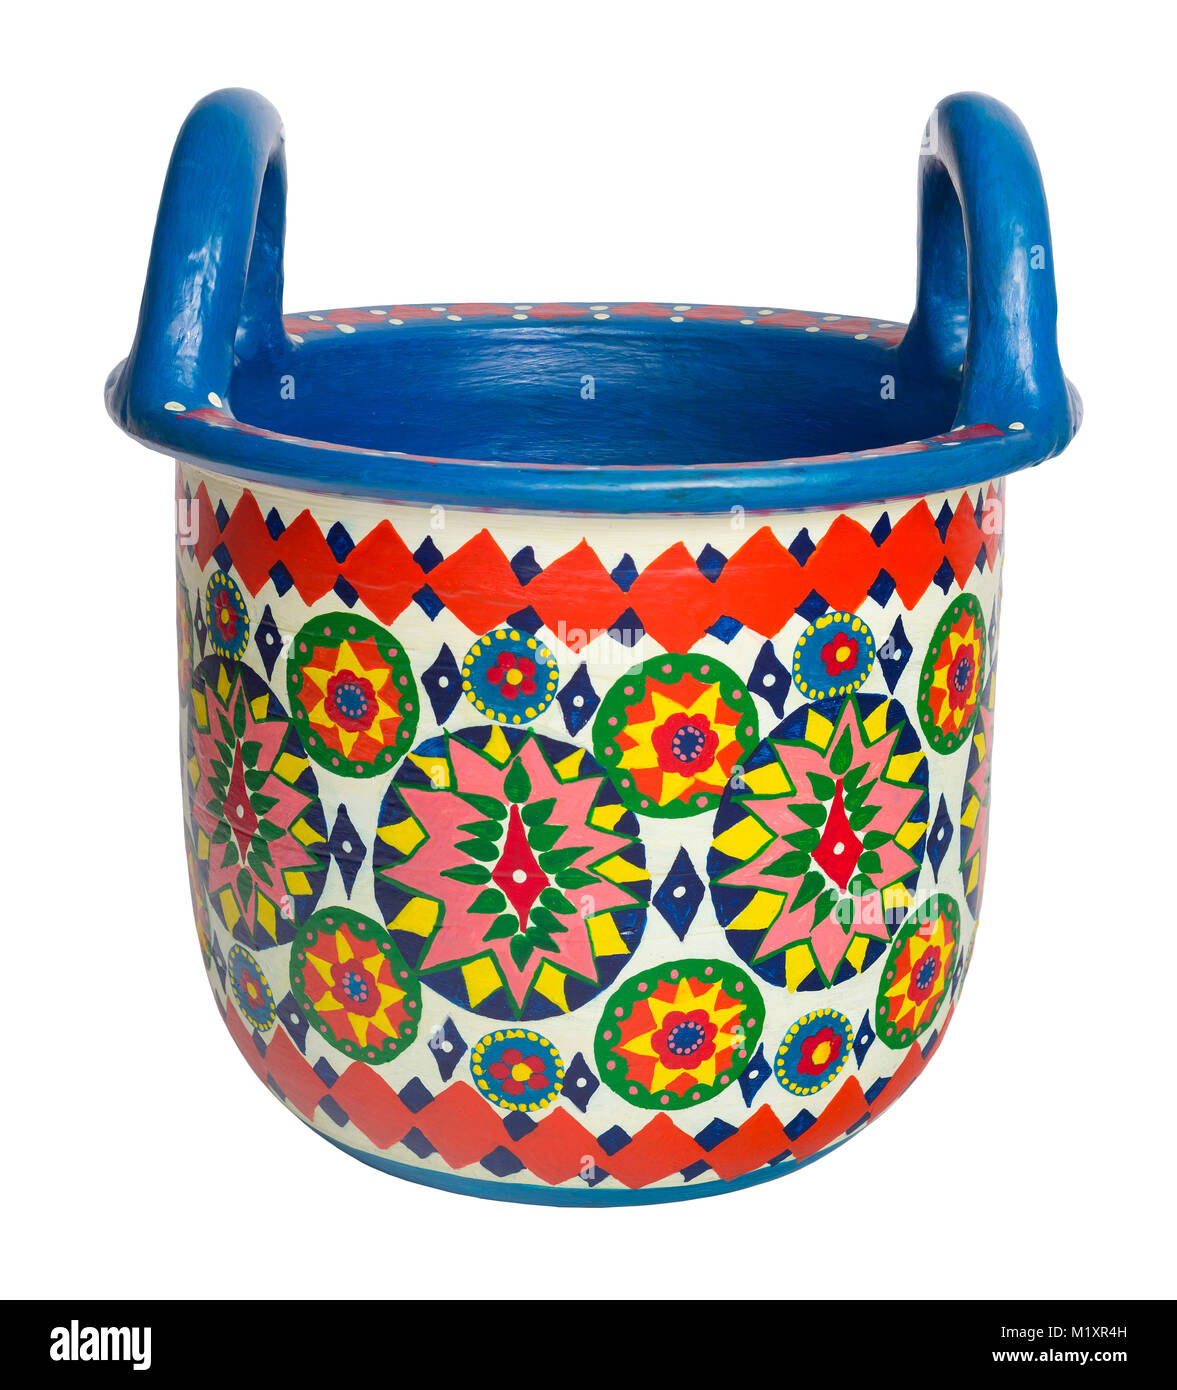 Handmade artistic pained colorful decorated pottery basket with two handles on white background with clipping path - Stock Image